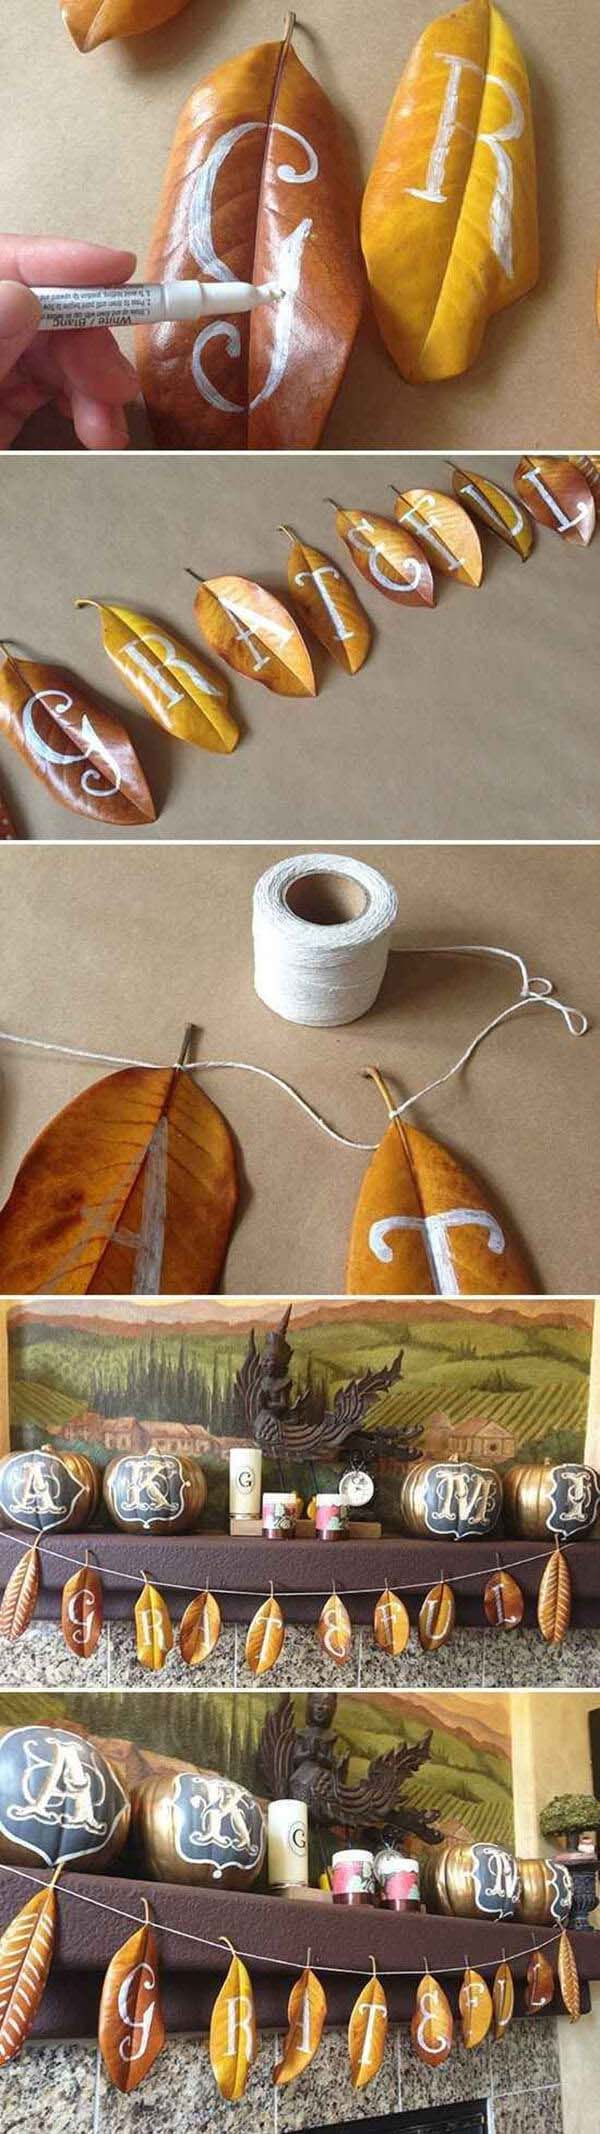 22. Pretty Personalized Leaves Party Garland #fall #leaf #crafts #decorhomeideas